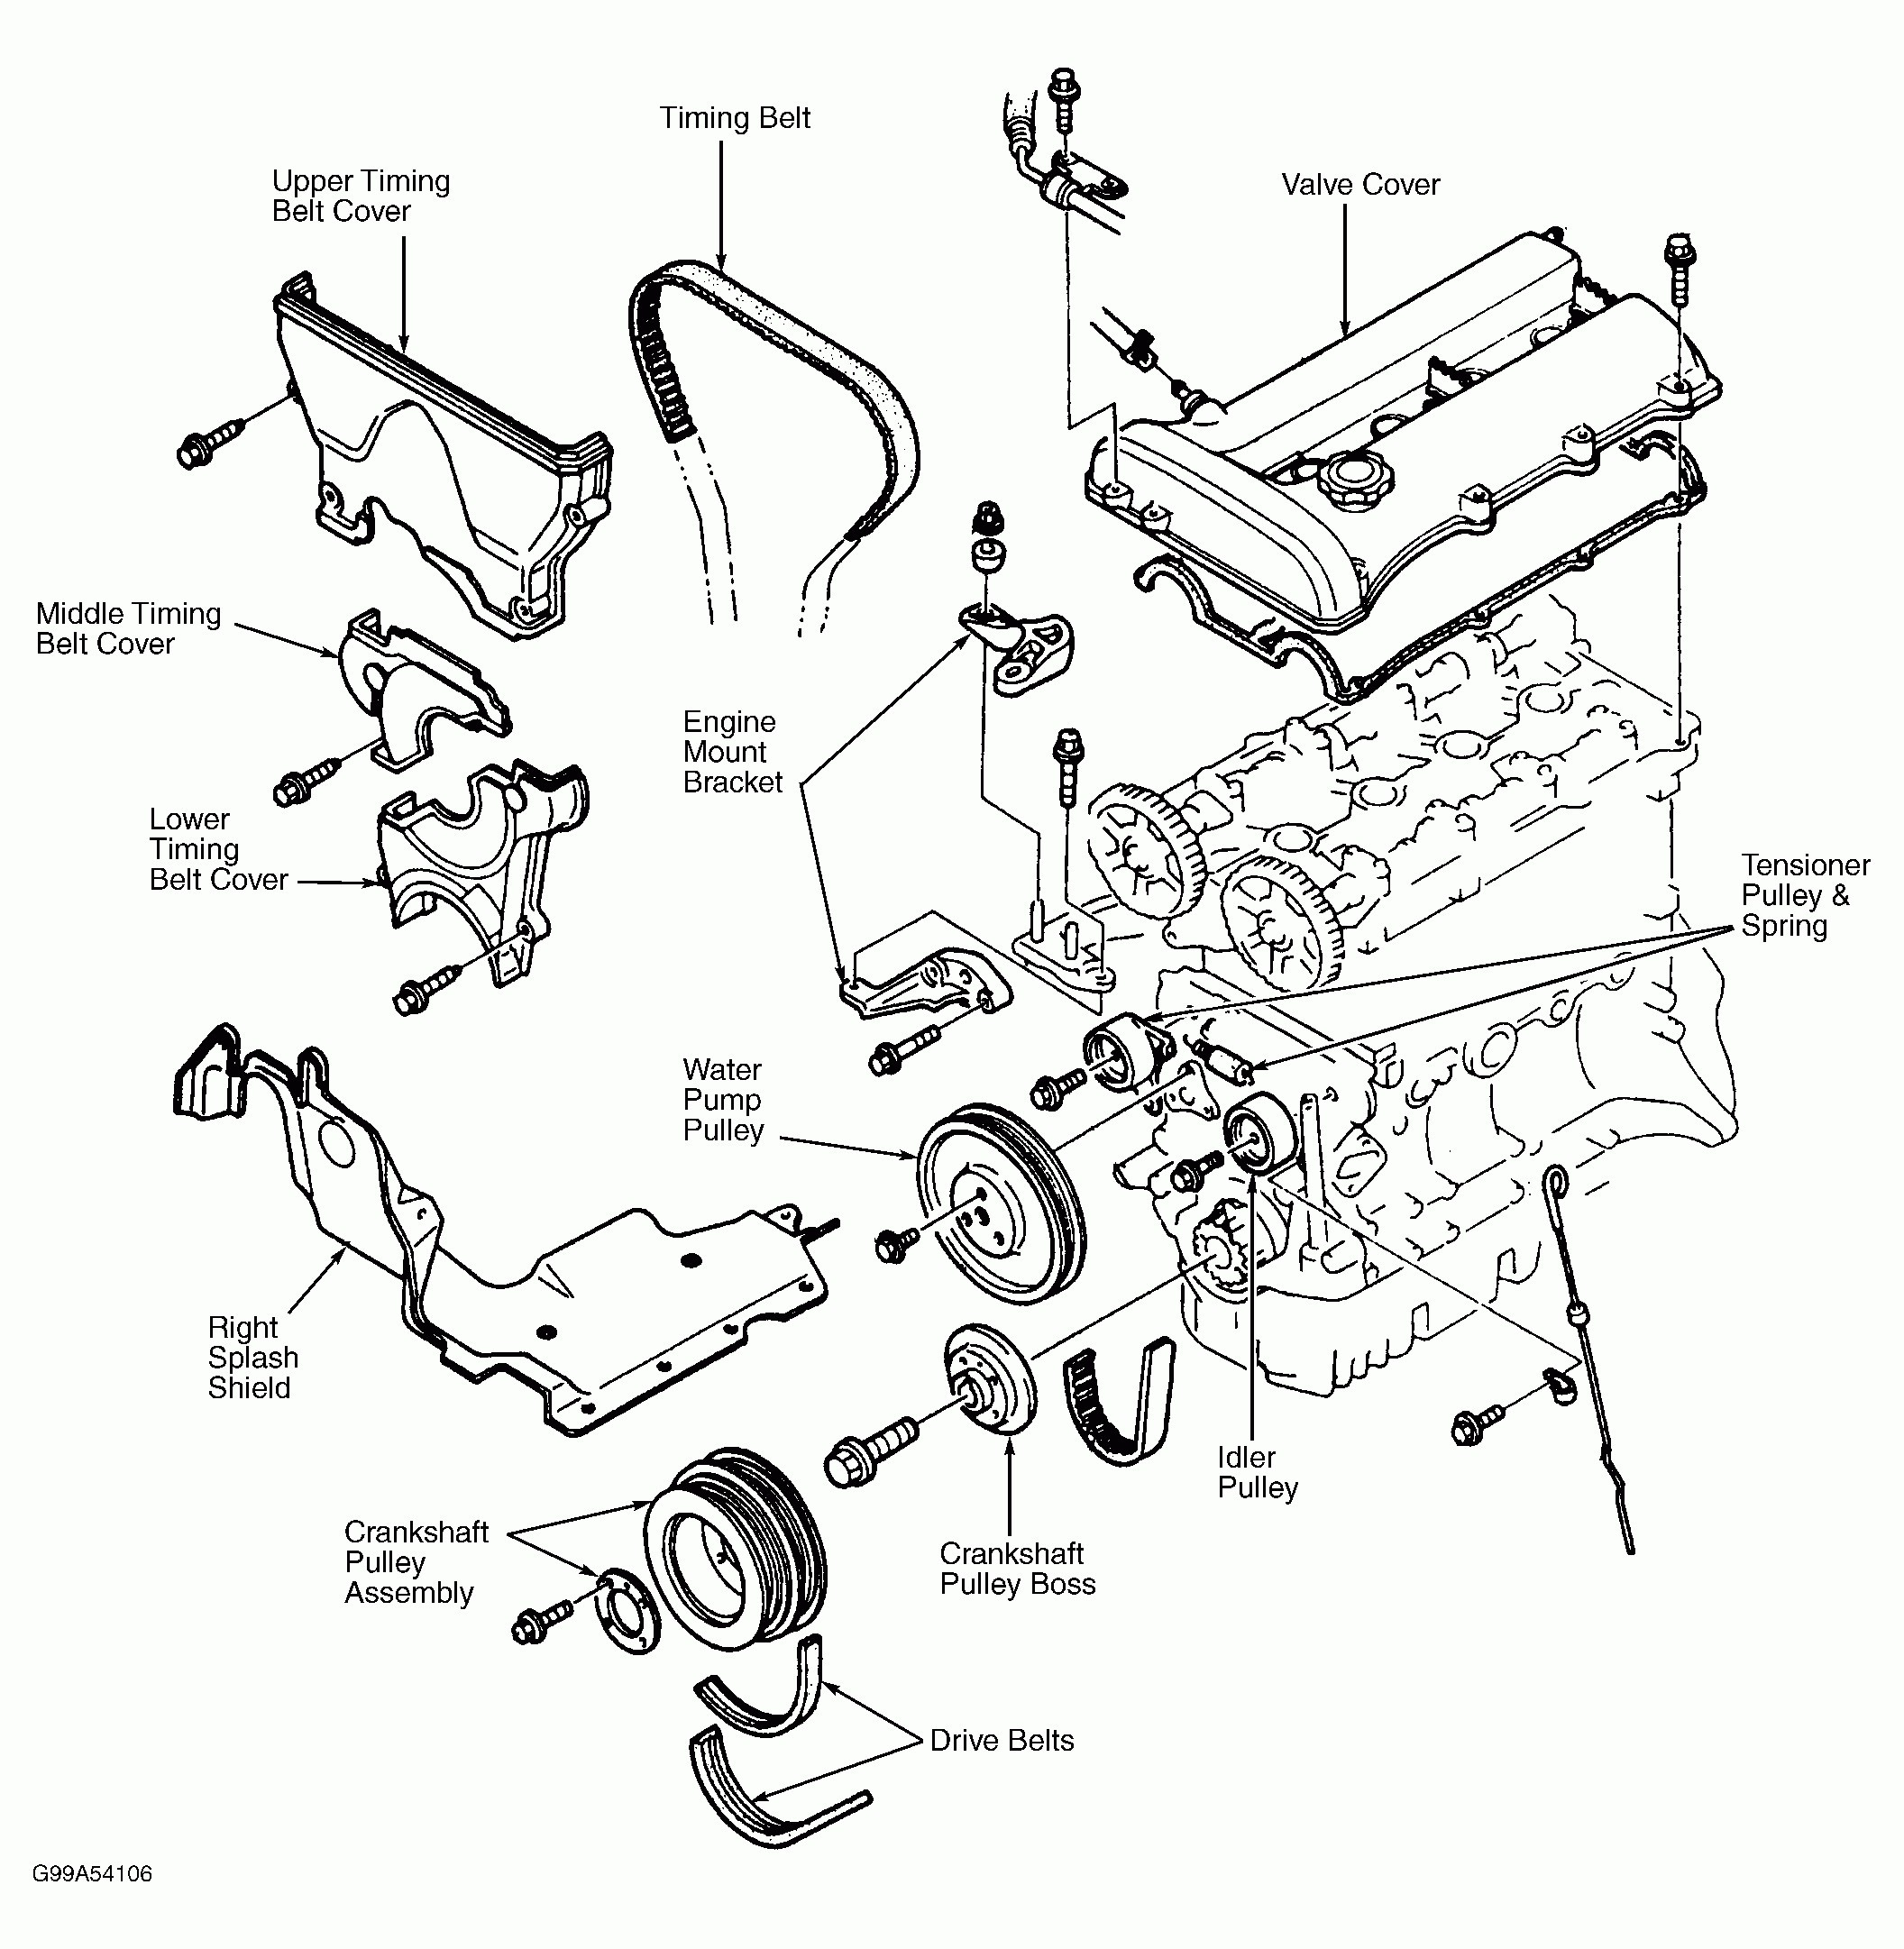 2003 Mazda Protege5 Engine Diagram Mazda Engine Schematics Wiring Diagram Database Of 2003 Mazda Protege5 Engine Diagram 2002 Mazda Protege Engine Diagram Wiring Diagrams Konsult